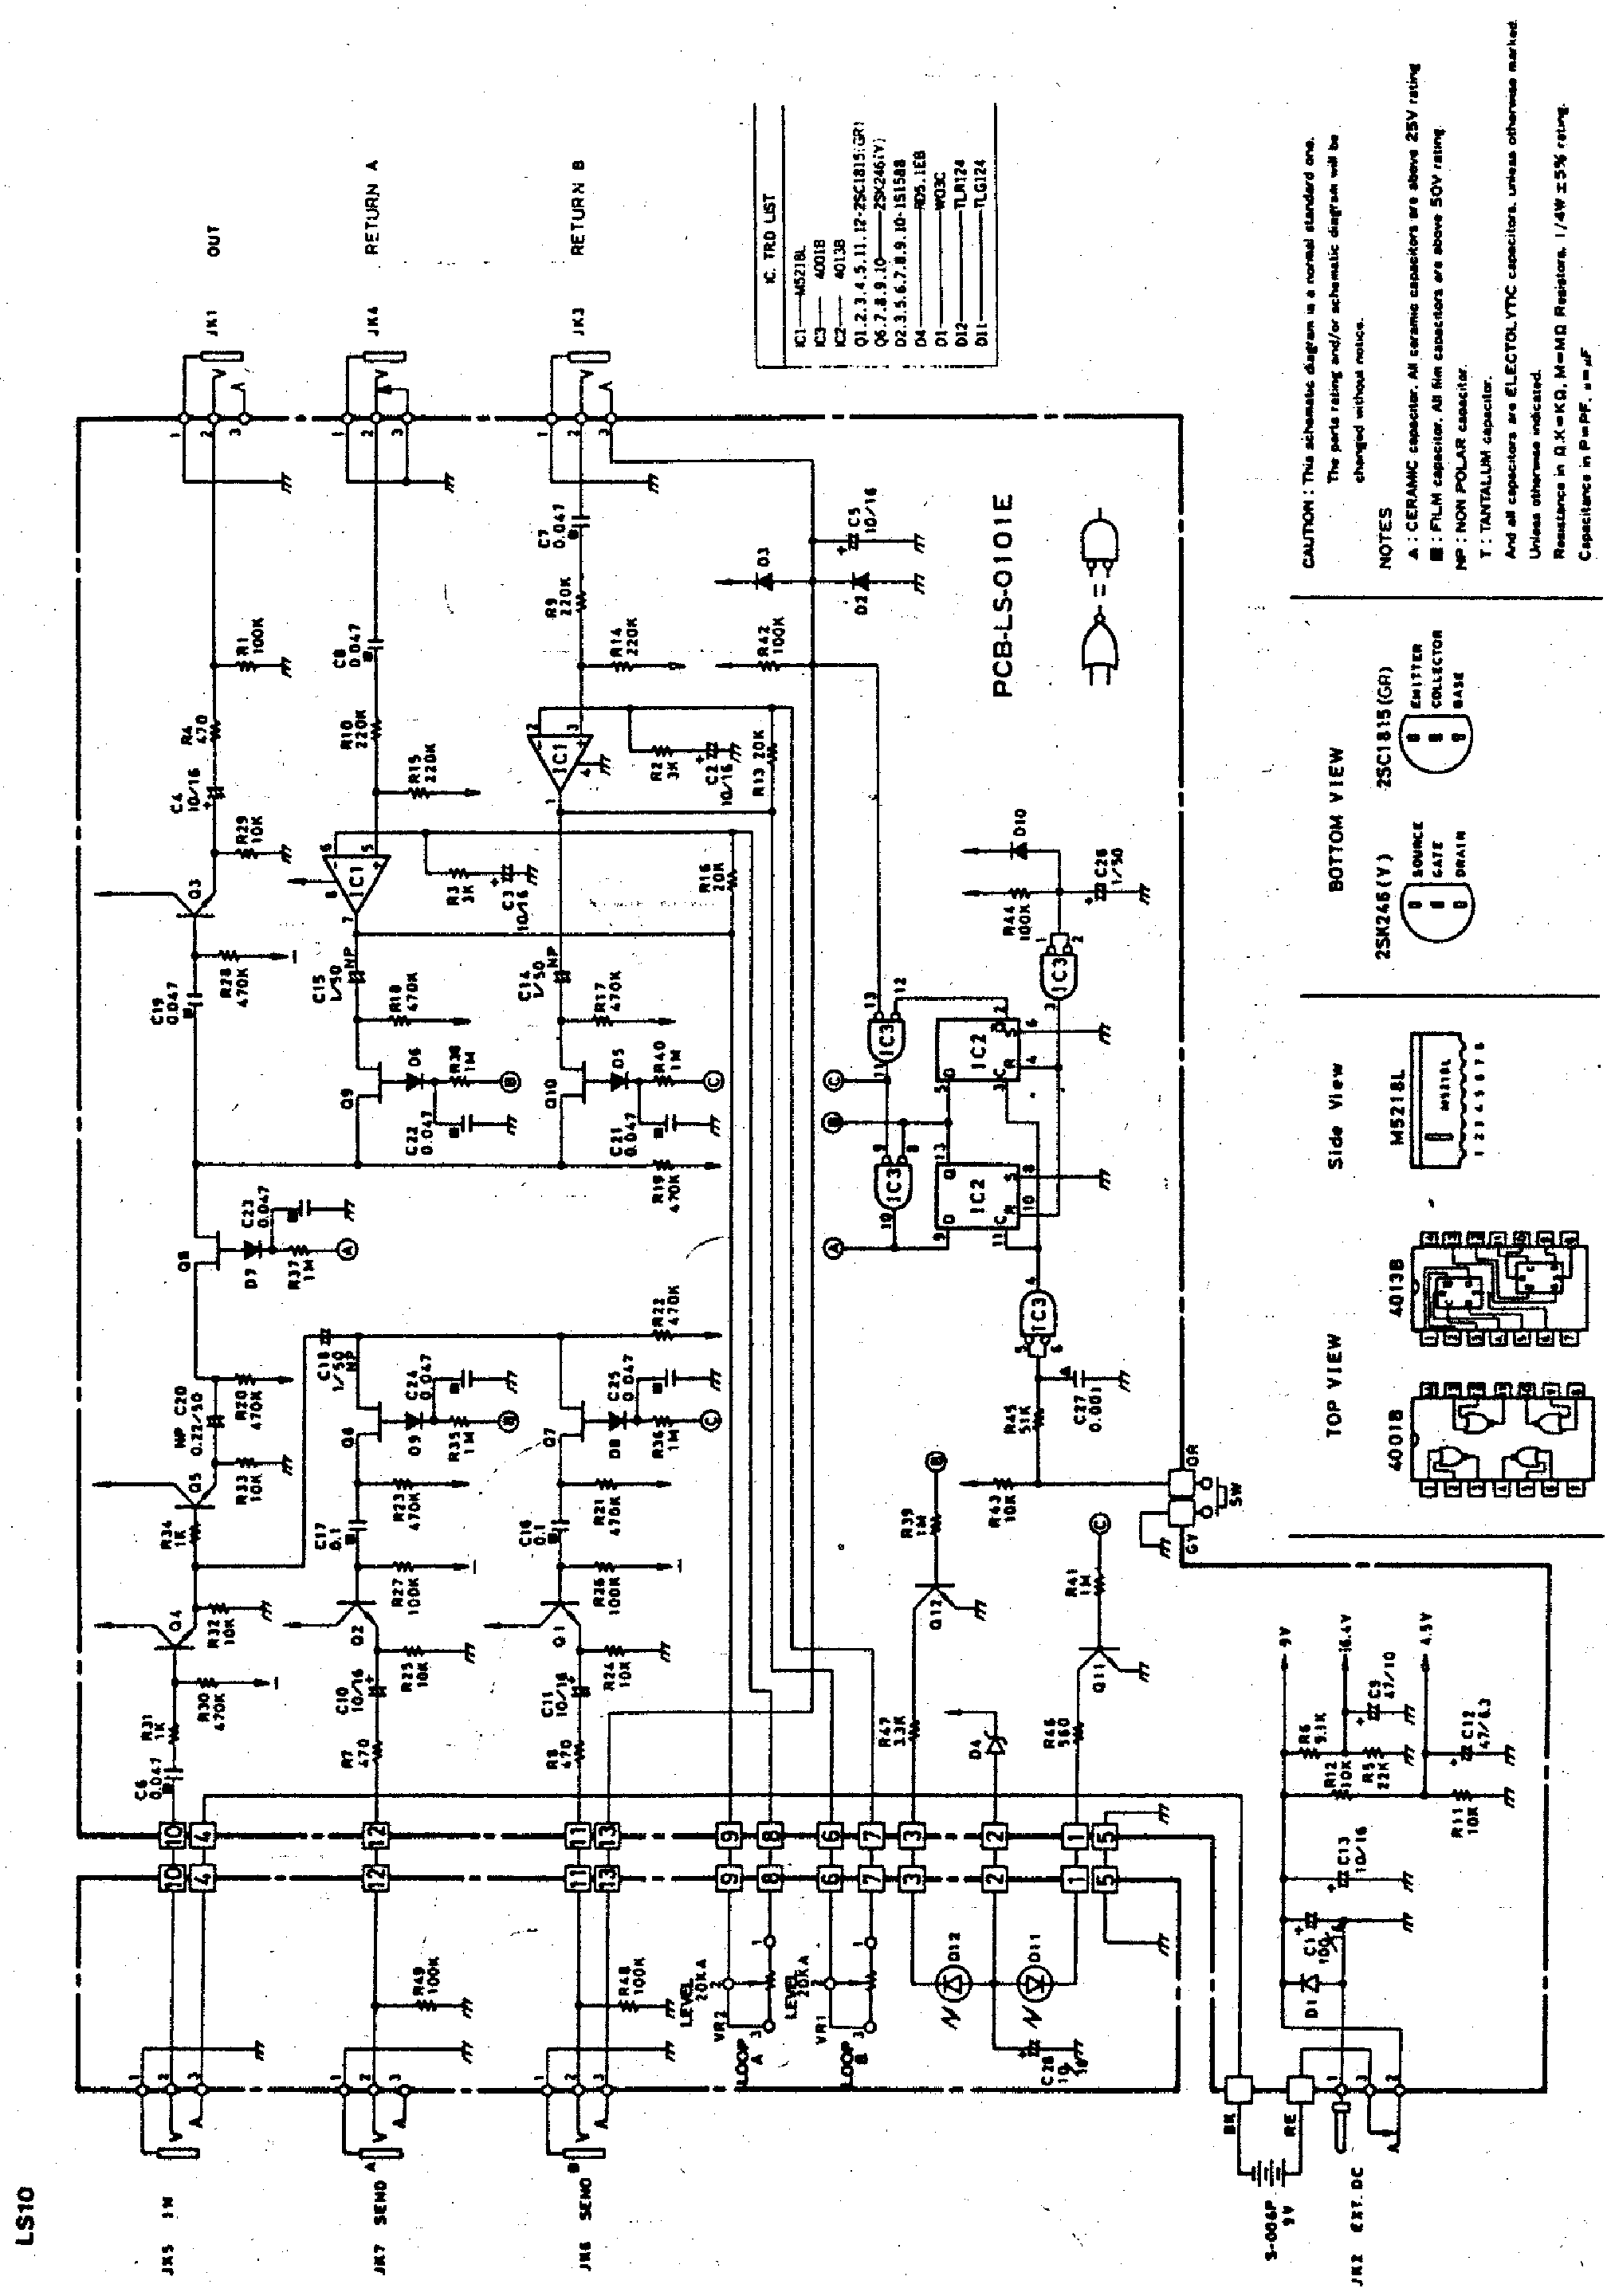 IBANEZ LS10 SCH Service Manual download, schematics